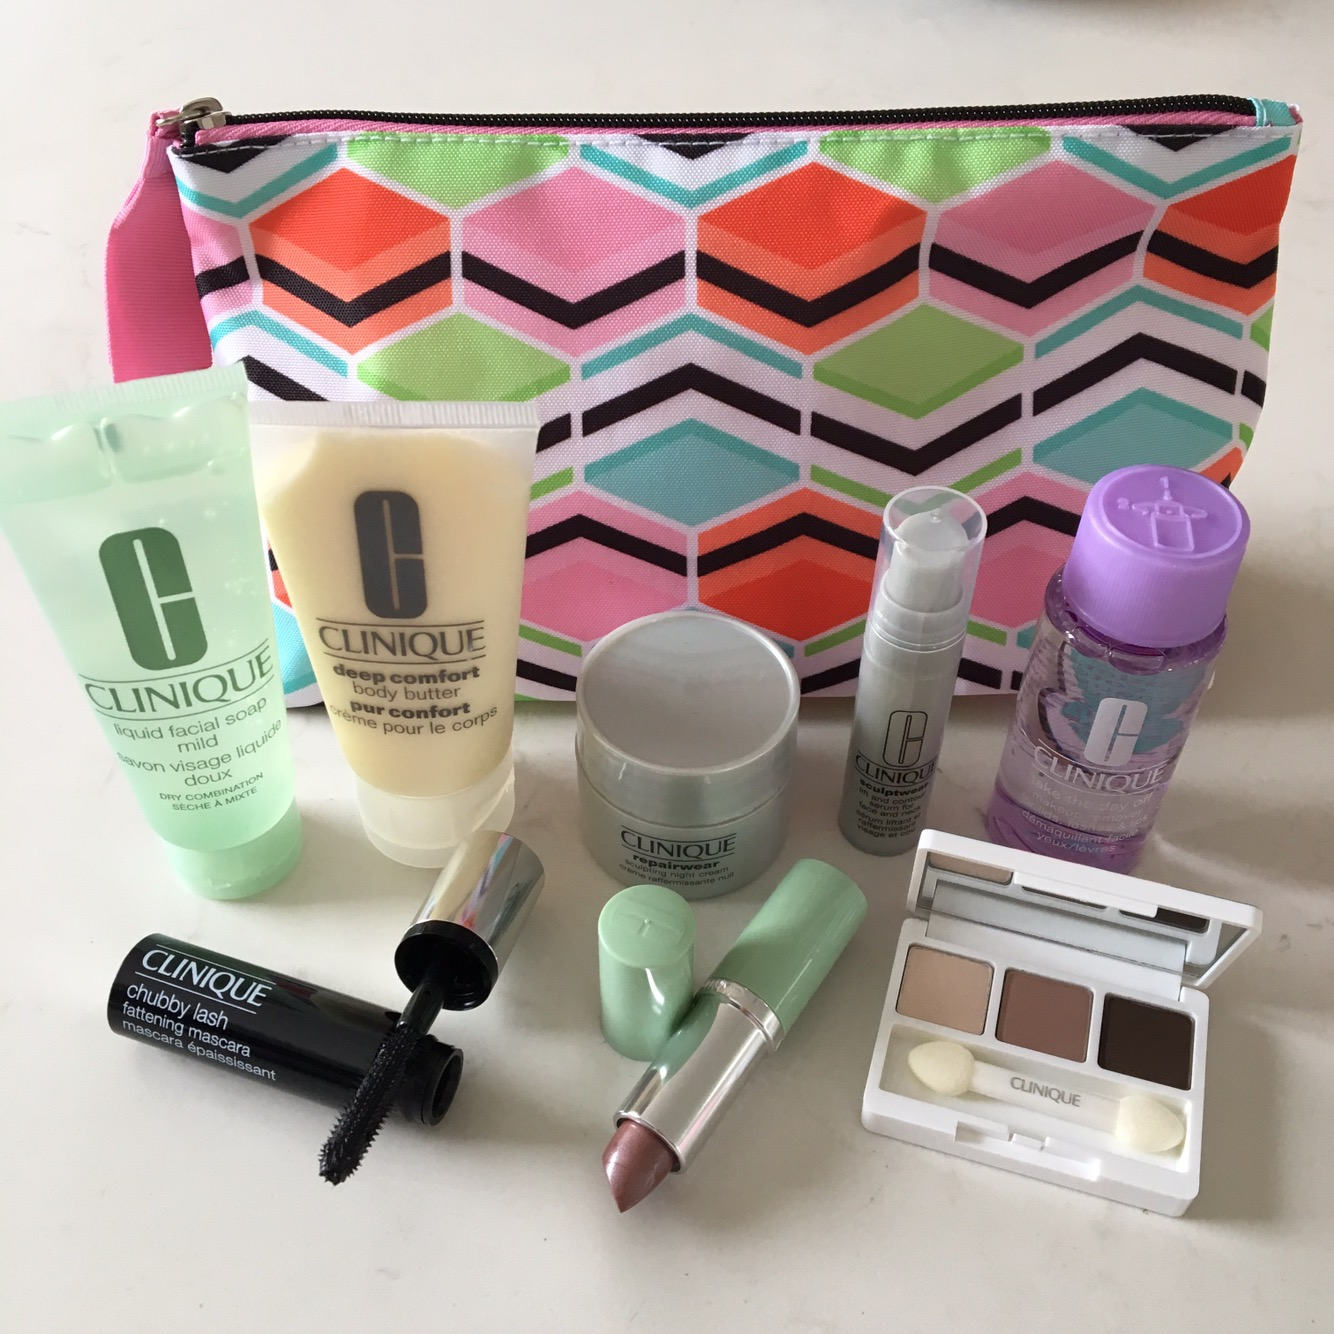 Clinique Bonus Time Gift with Purchase - Bellyrubz Beauty -